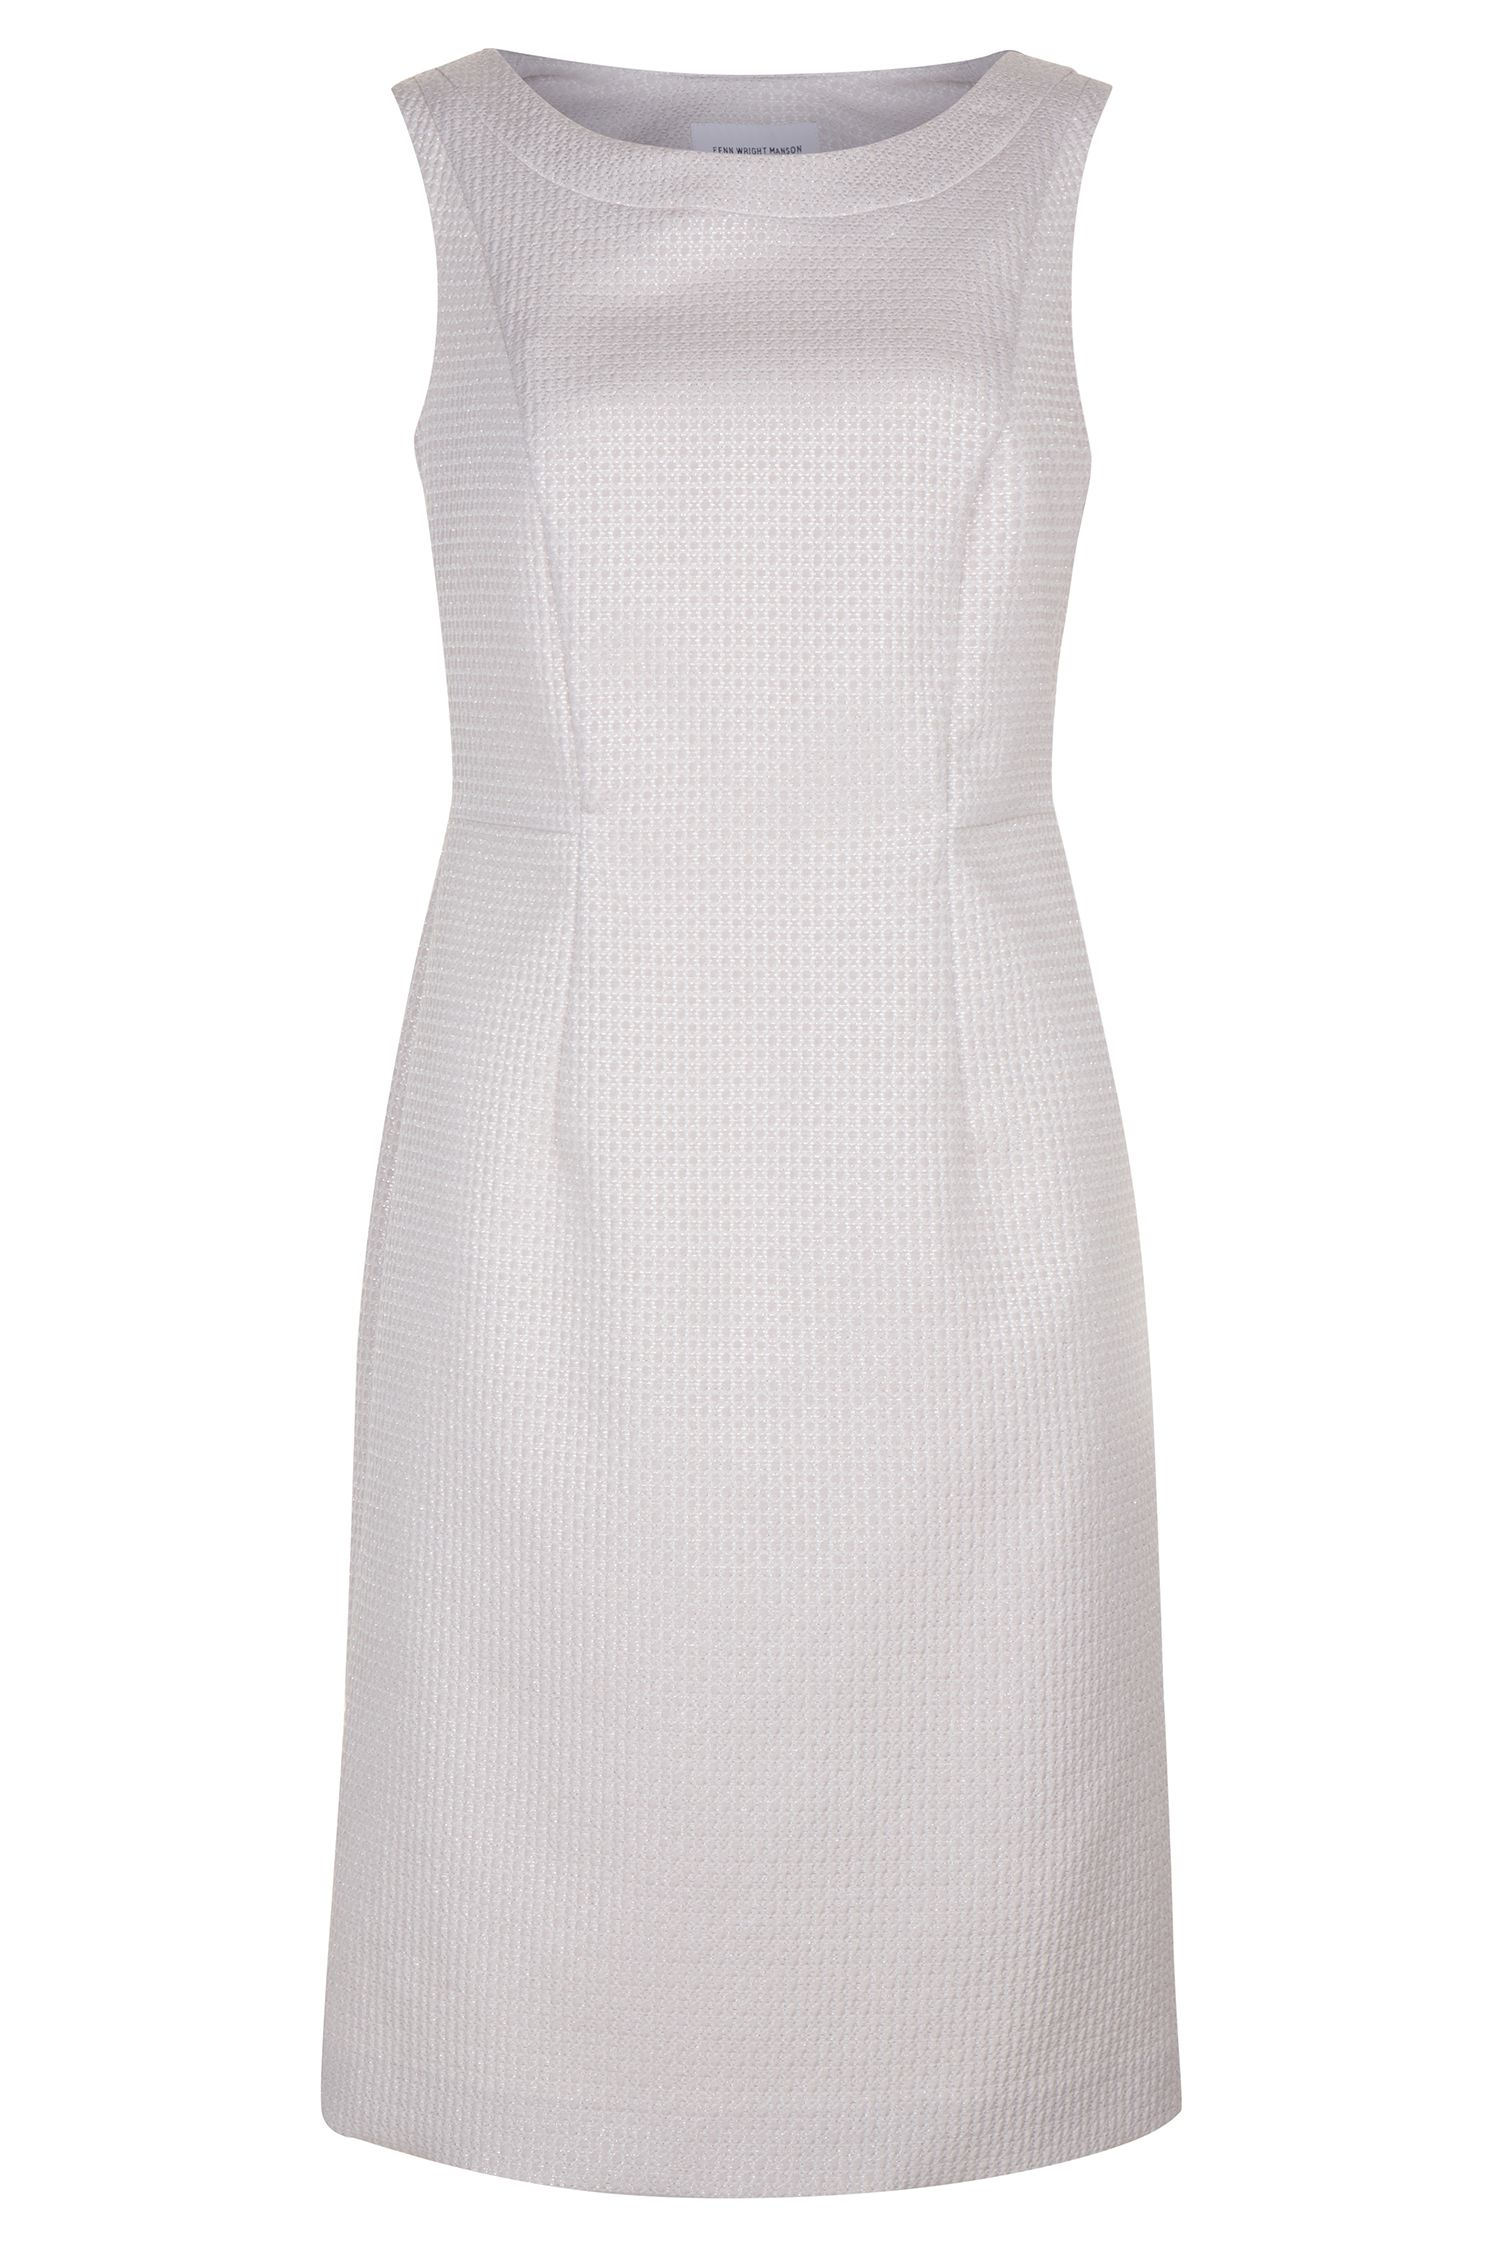 Fenn Wright Manson Parma Dress, Neutral